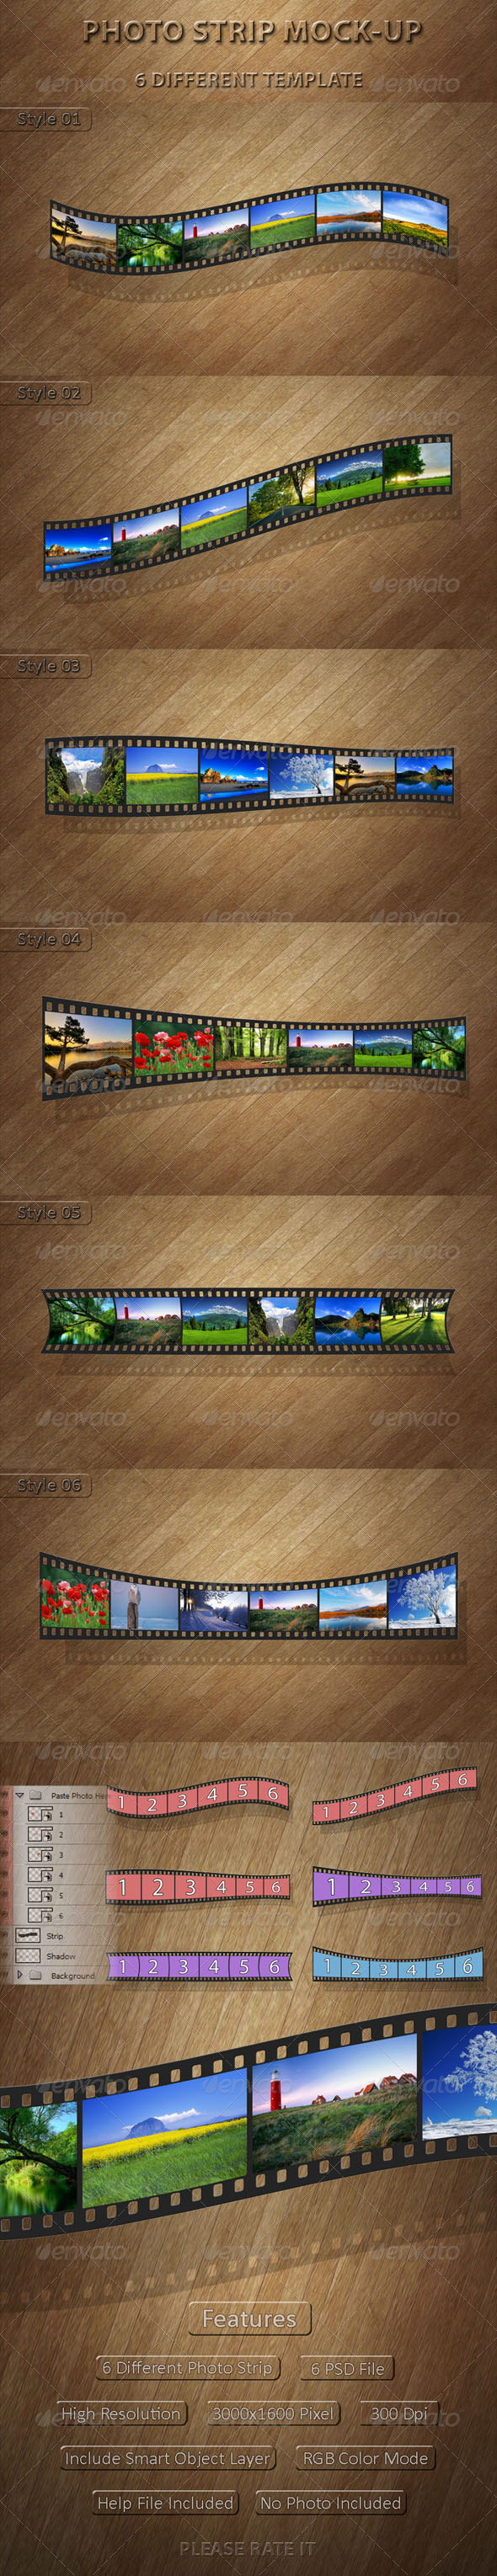 GraphicRiver Photo Strip Mock-Up 4983328